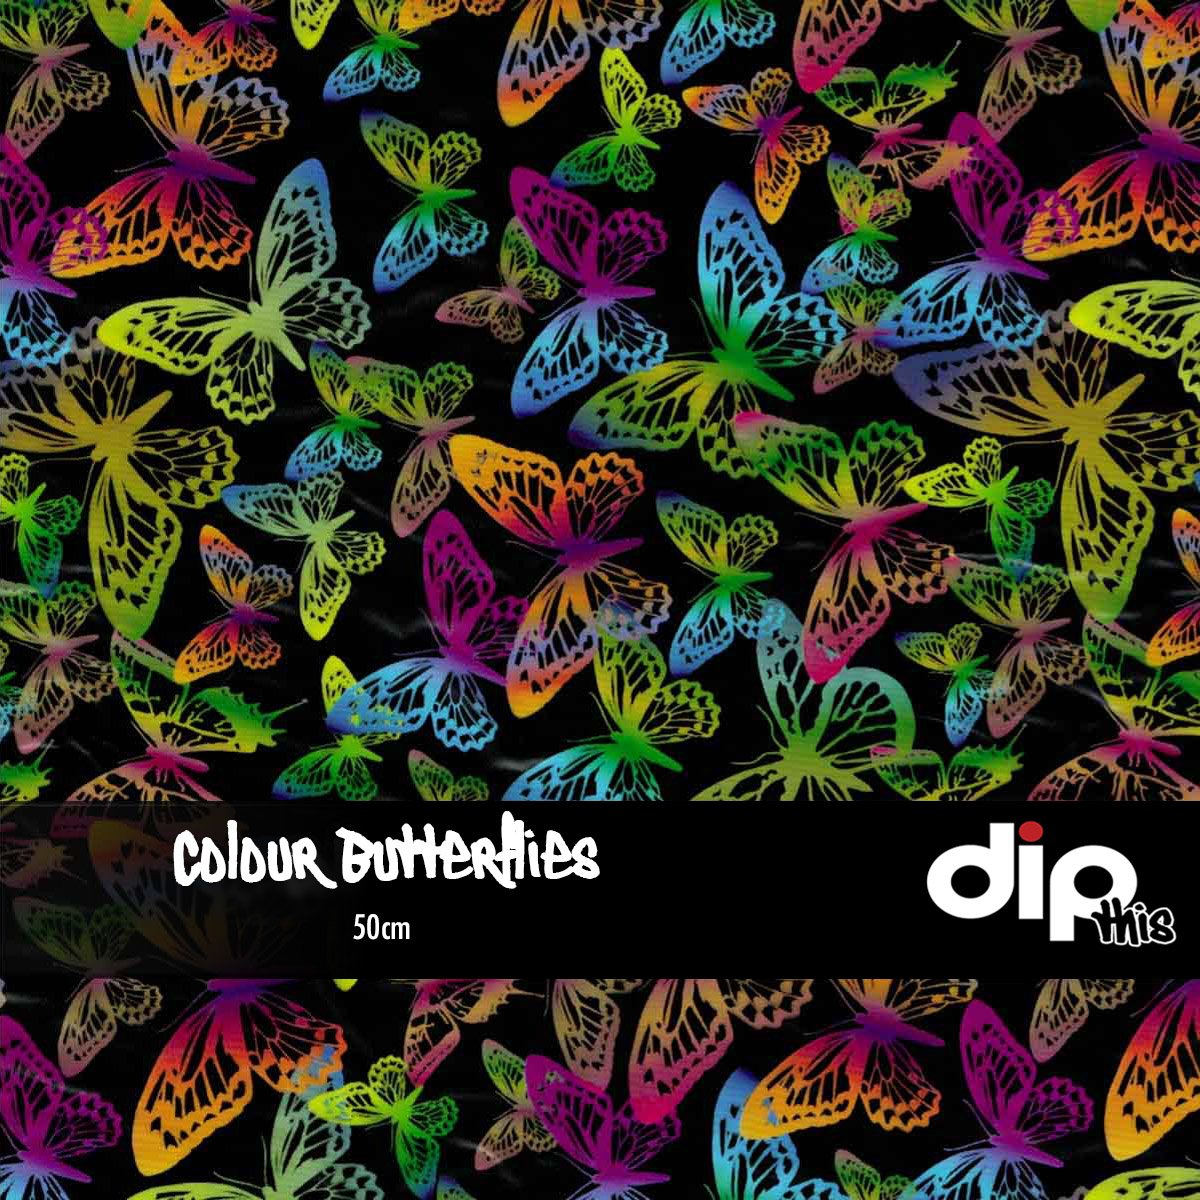 Colour Butterflies